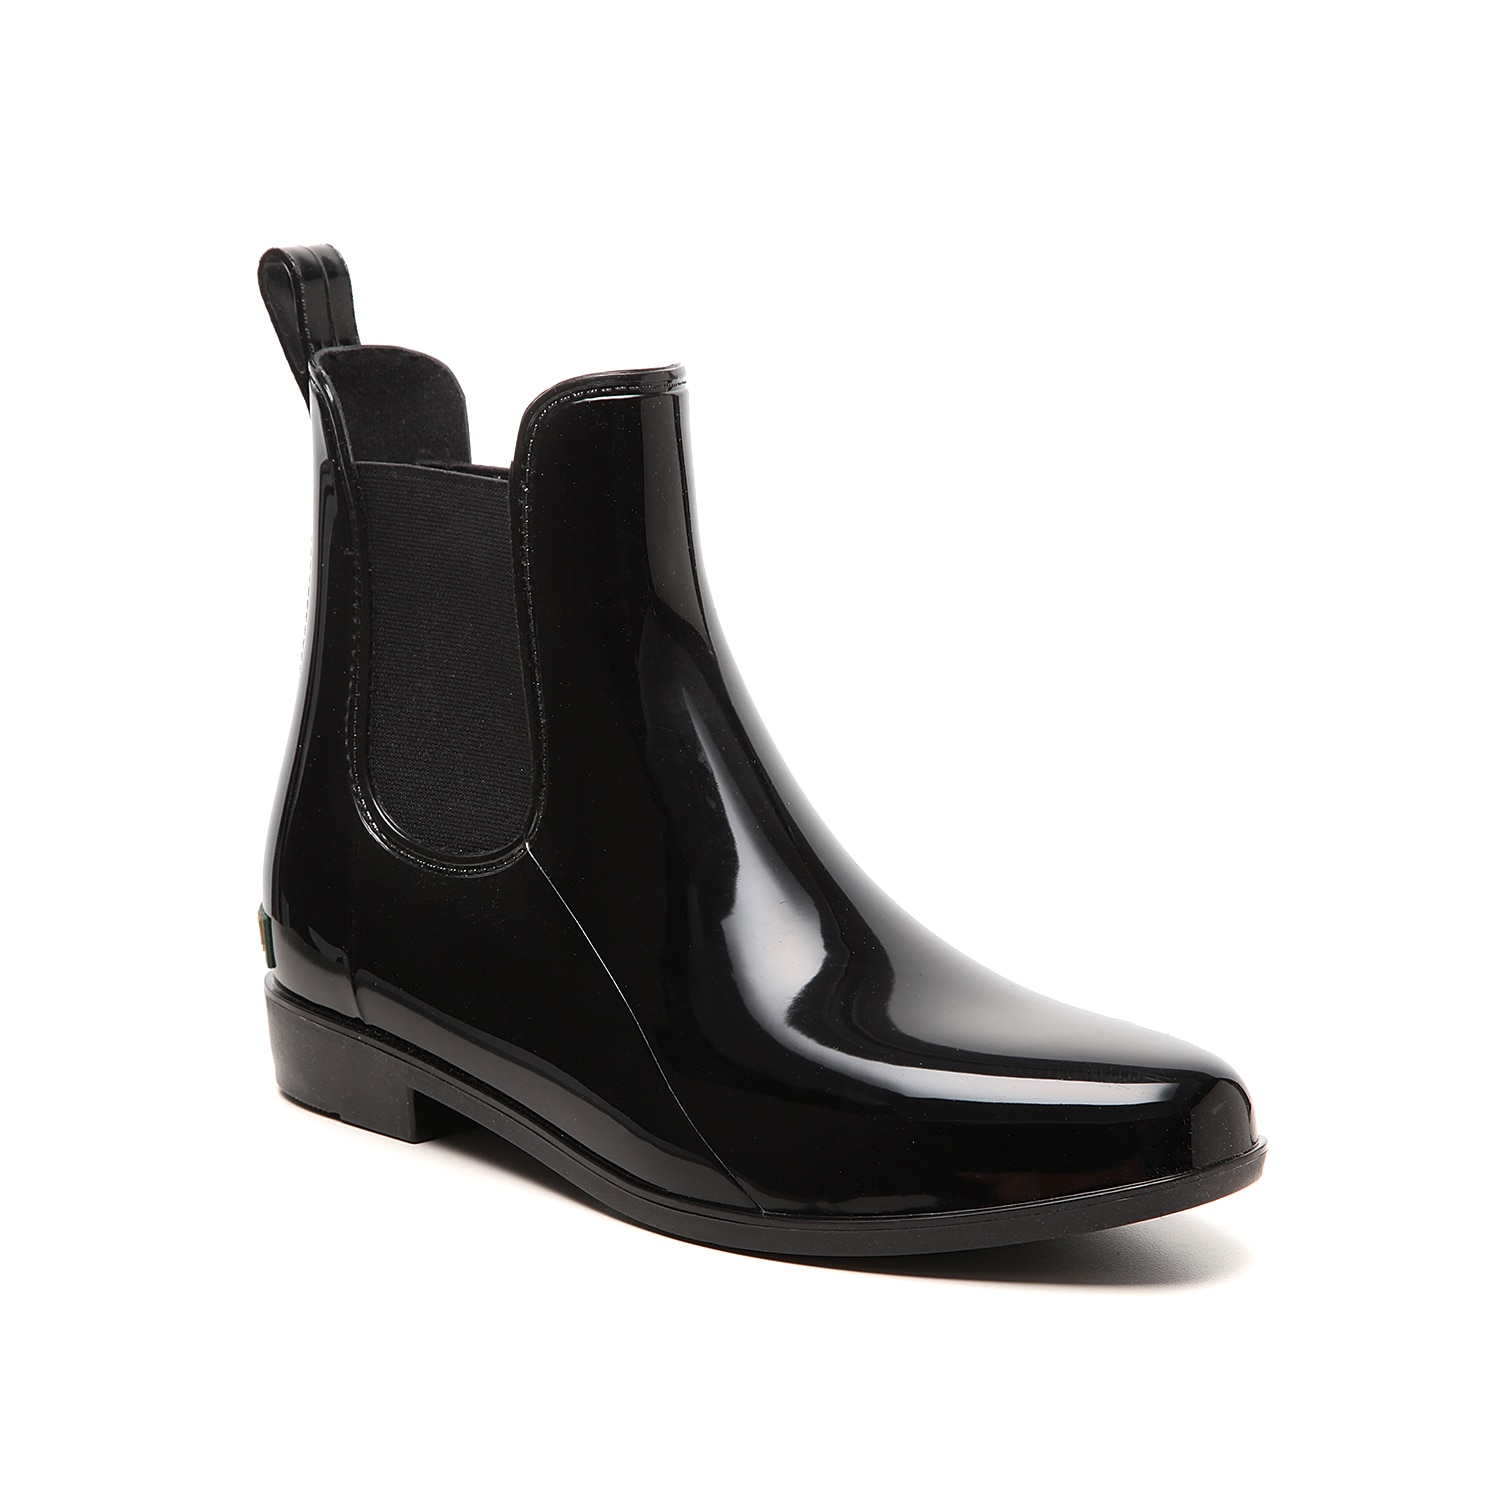 Brave the storm in the Tally rain boots from Lauren Ralph Lauren. With a trendy Chelsea boot design, these cute wellies will keep your feet dry and stylish on those wet and gloomy days!Click here for Boot Measuring Guide.